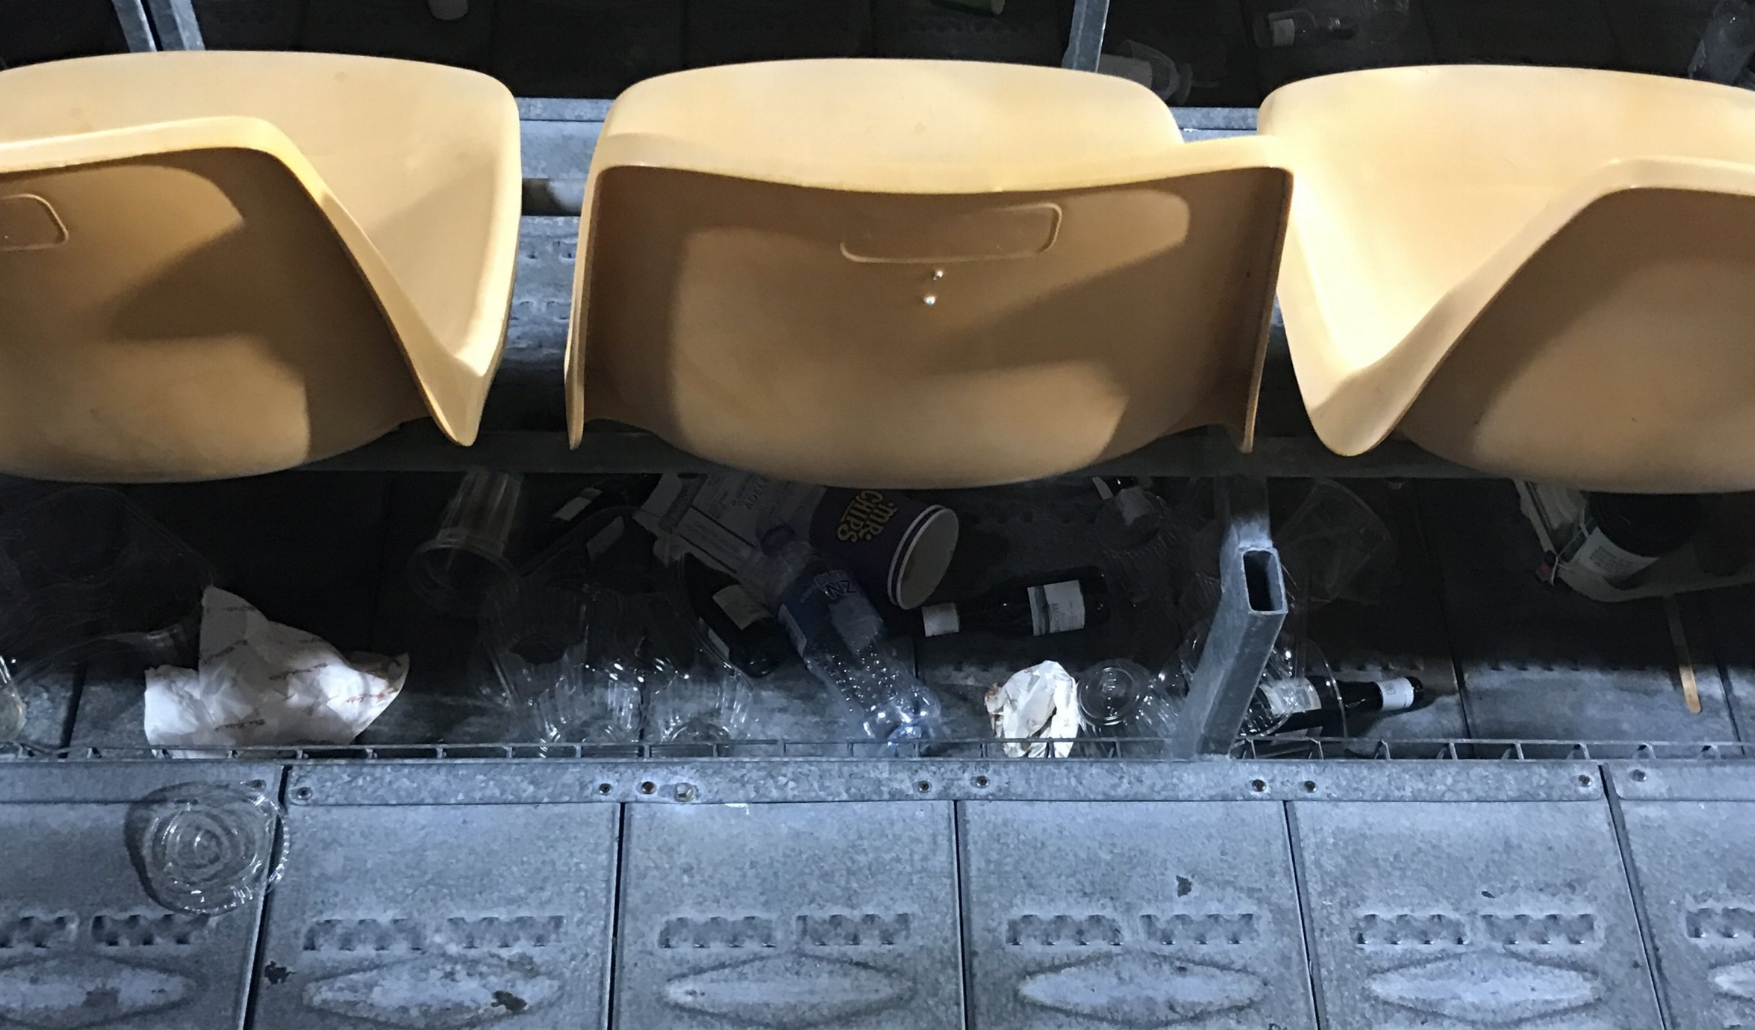 Aftermath of Adele at Mt Smart Stadium